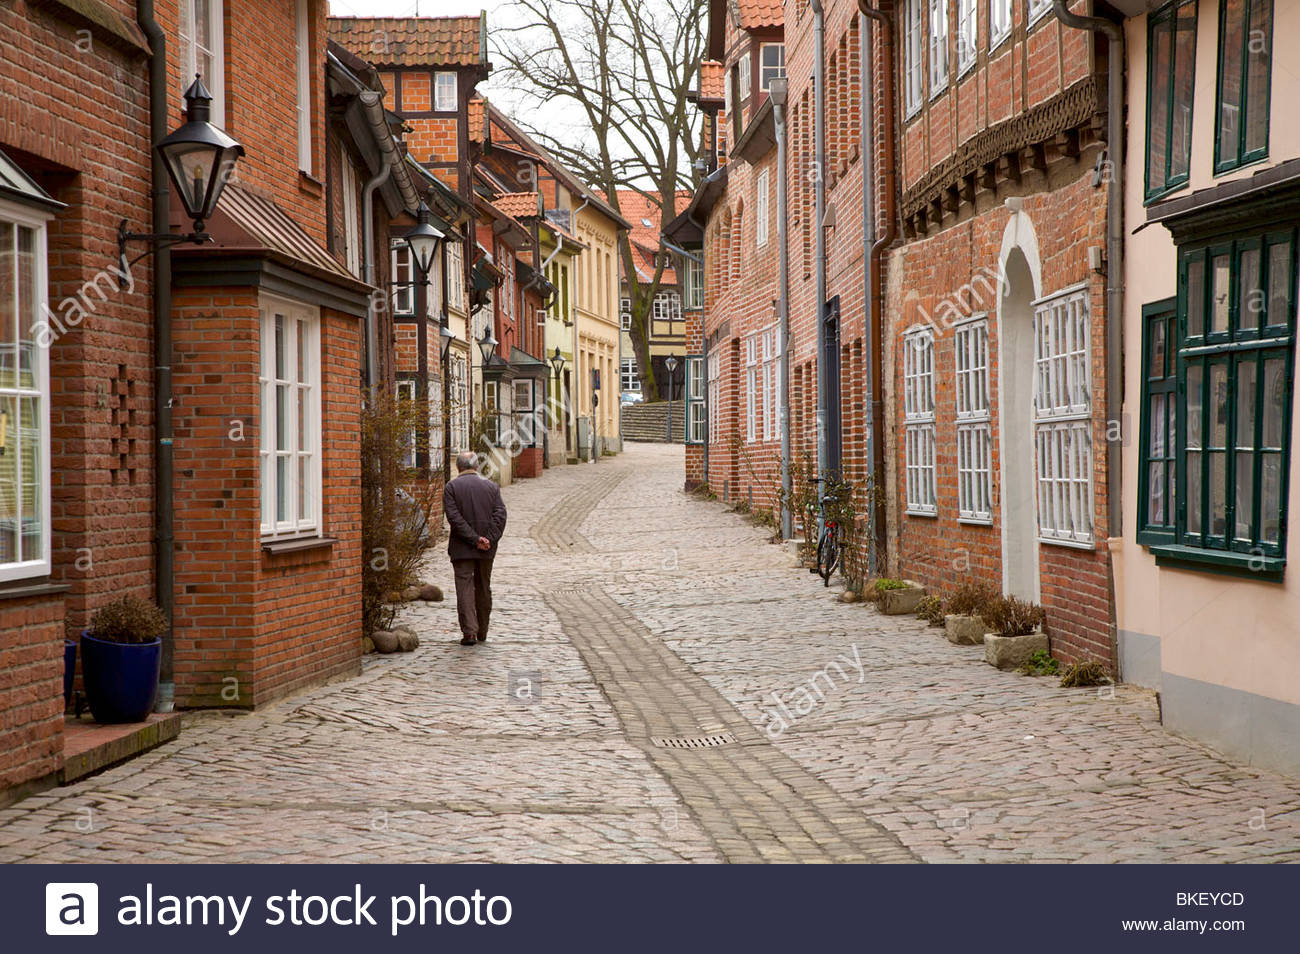 Old man walking down a cobbled street in Lüneburg old town. Lower Saxony, Germany. - Stock Image